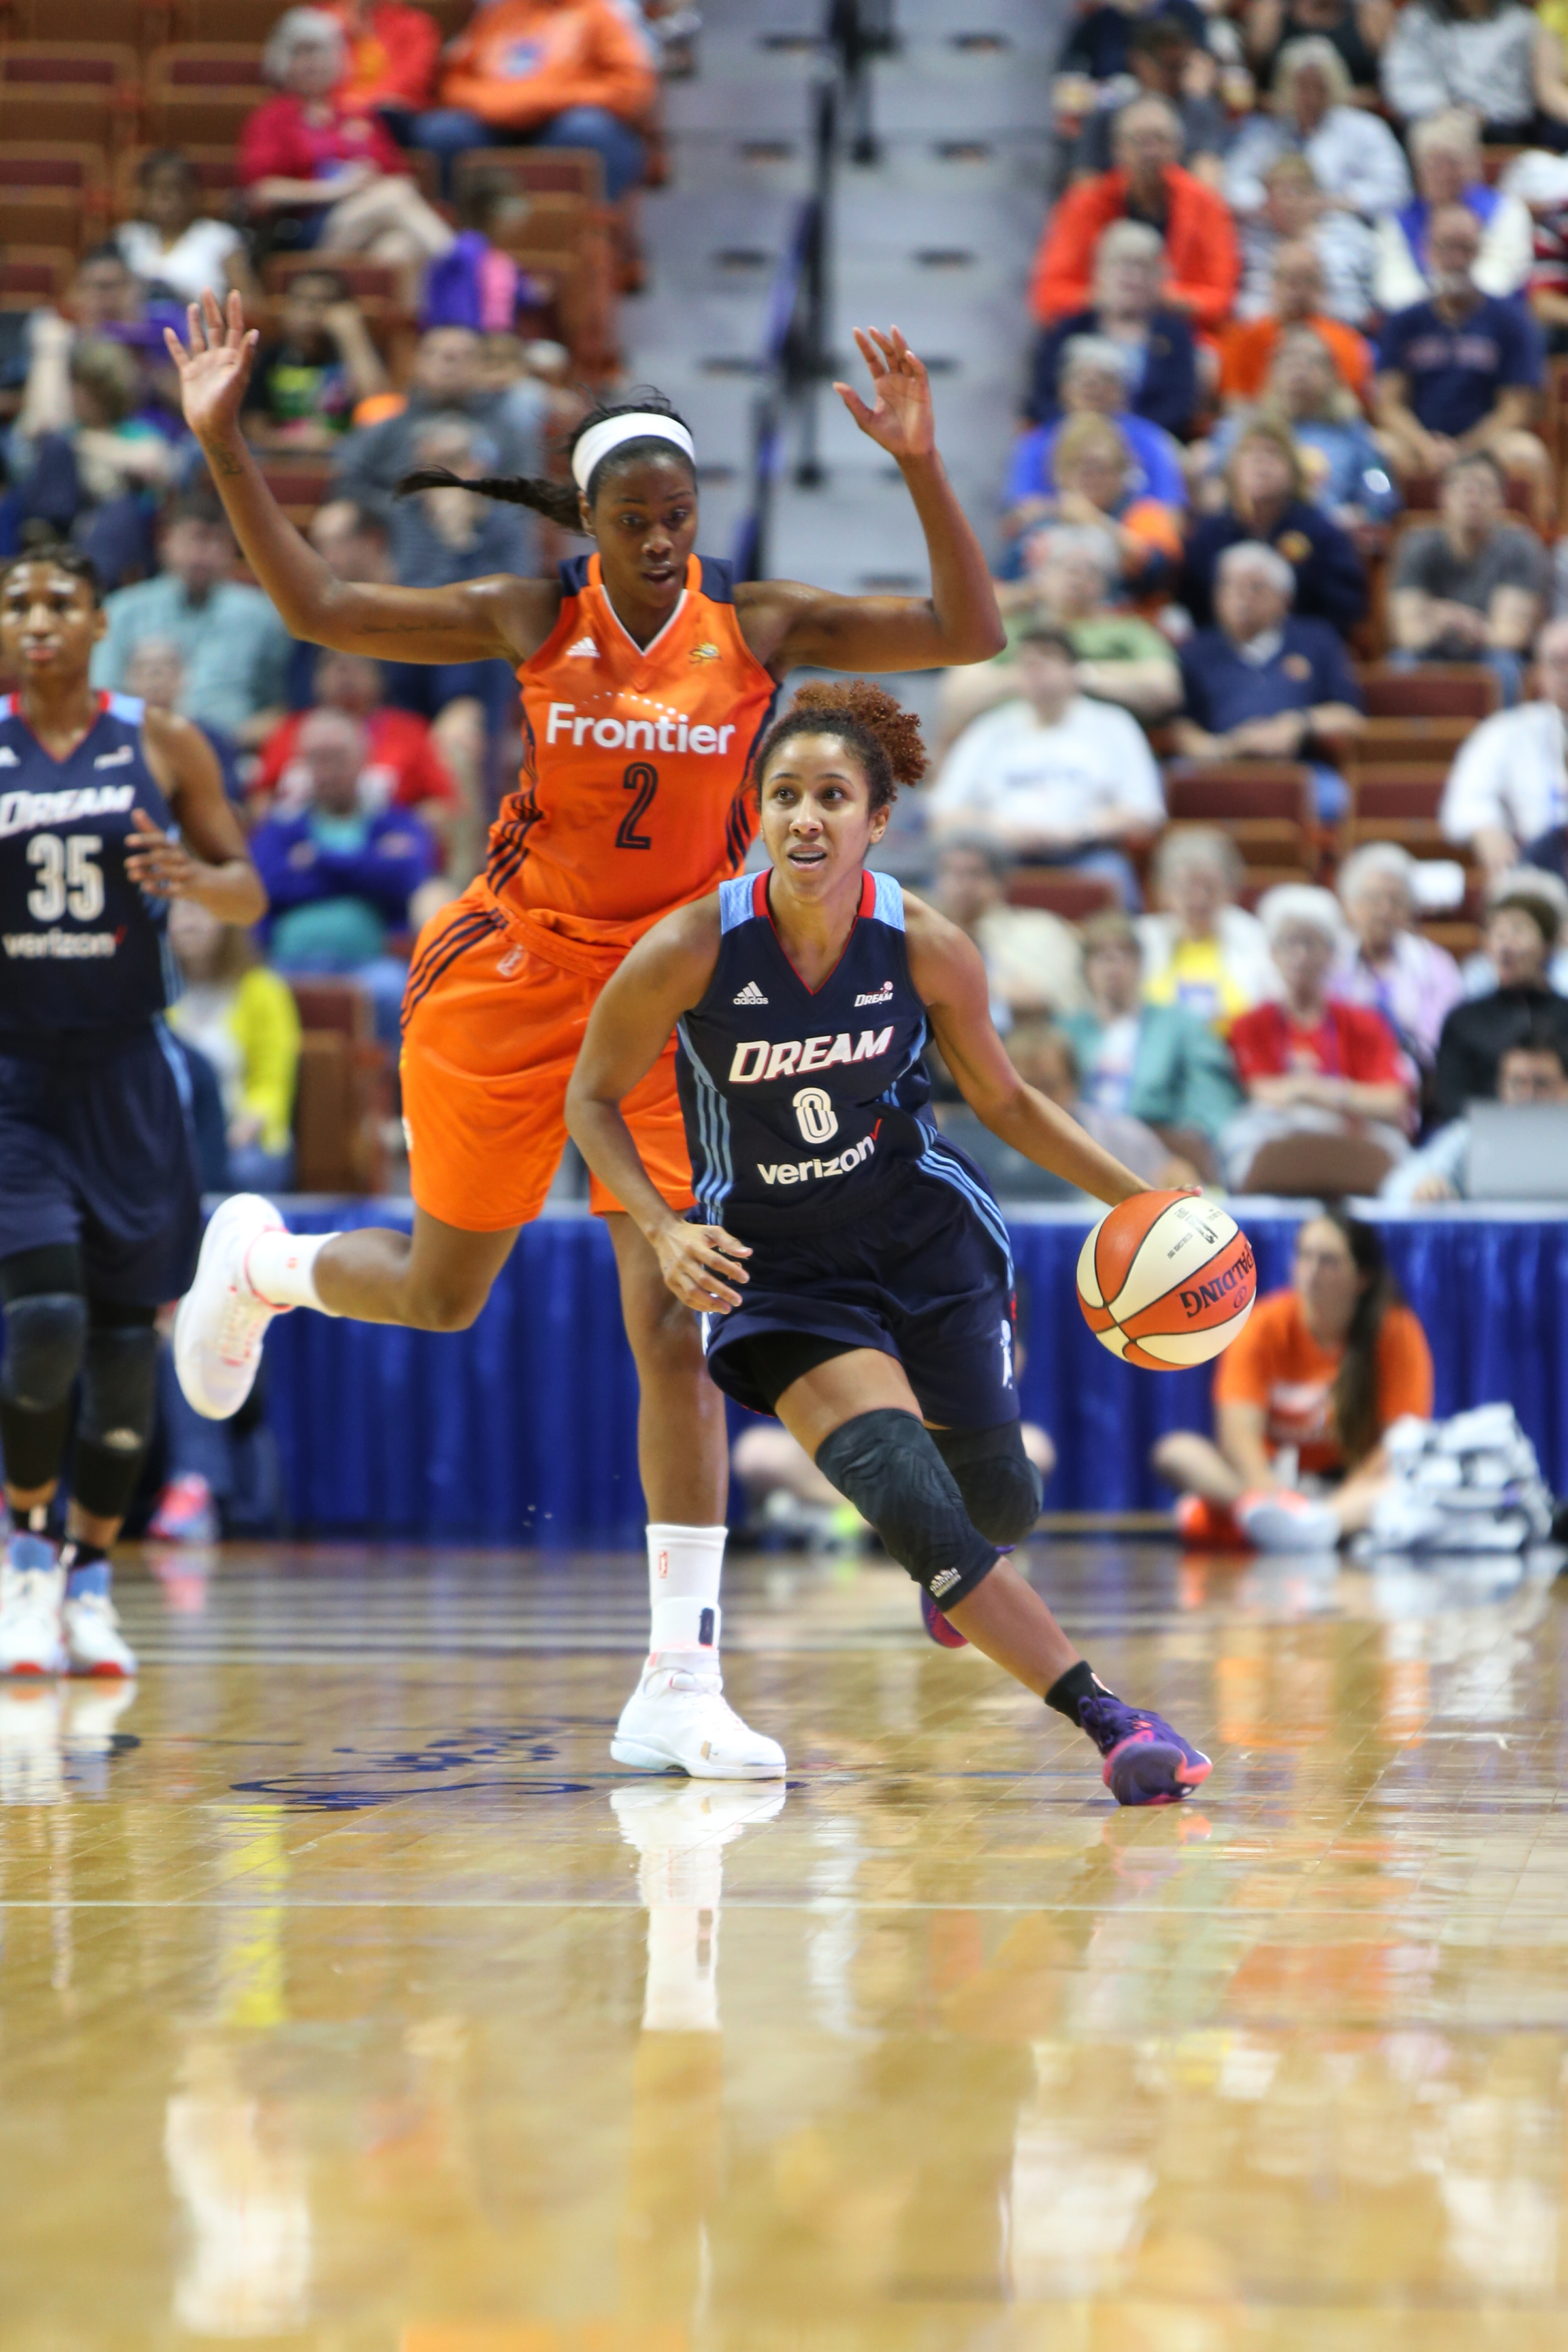 UNCASVILLE, CT - JUNE 3: Meighan Simmons #0 of the Atlanta Dream handles the ball against the Connecticut Sun on June 3, 2016 at Mohegan Sun Arena in Uncasville, CT. NOTE TO USER: User expressly acknowledges and agrees that, by downloading and or using this Photograph, user is consenting to the terms and conditions of the Getty Images License Agreement. Mandatory Copyright Notice: Copyright 2016 NBAE (Photo by Chris Marion/NBAE via Getty Images)